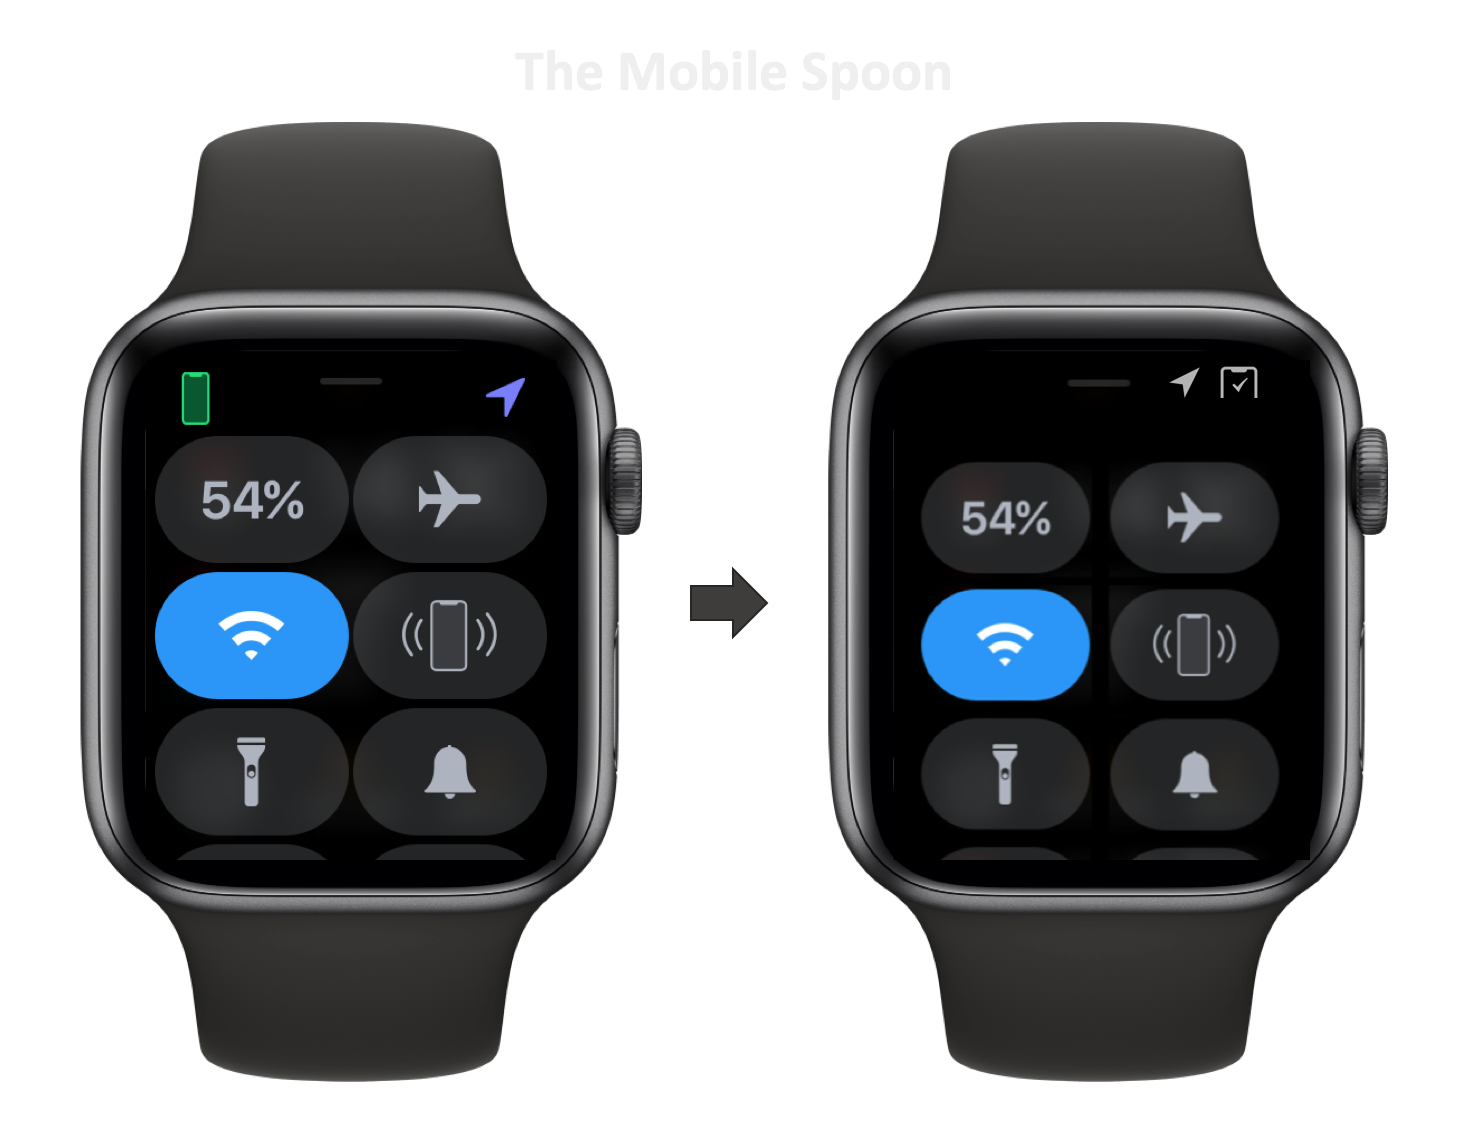 Apple Watch Control Center - existing vs. fine tuned version